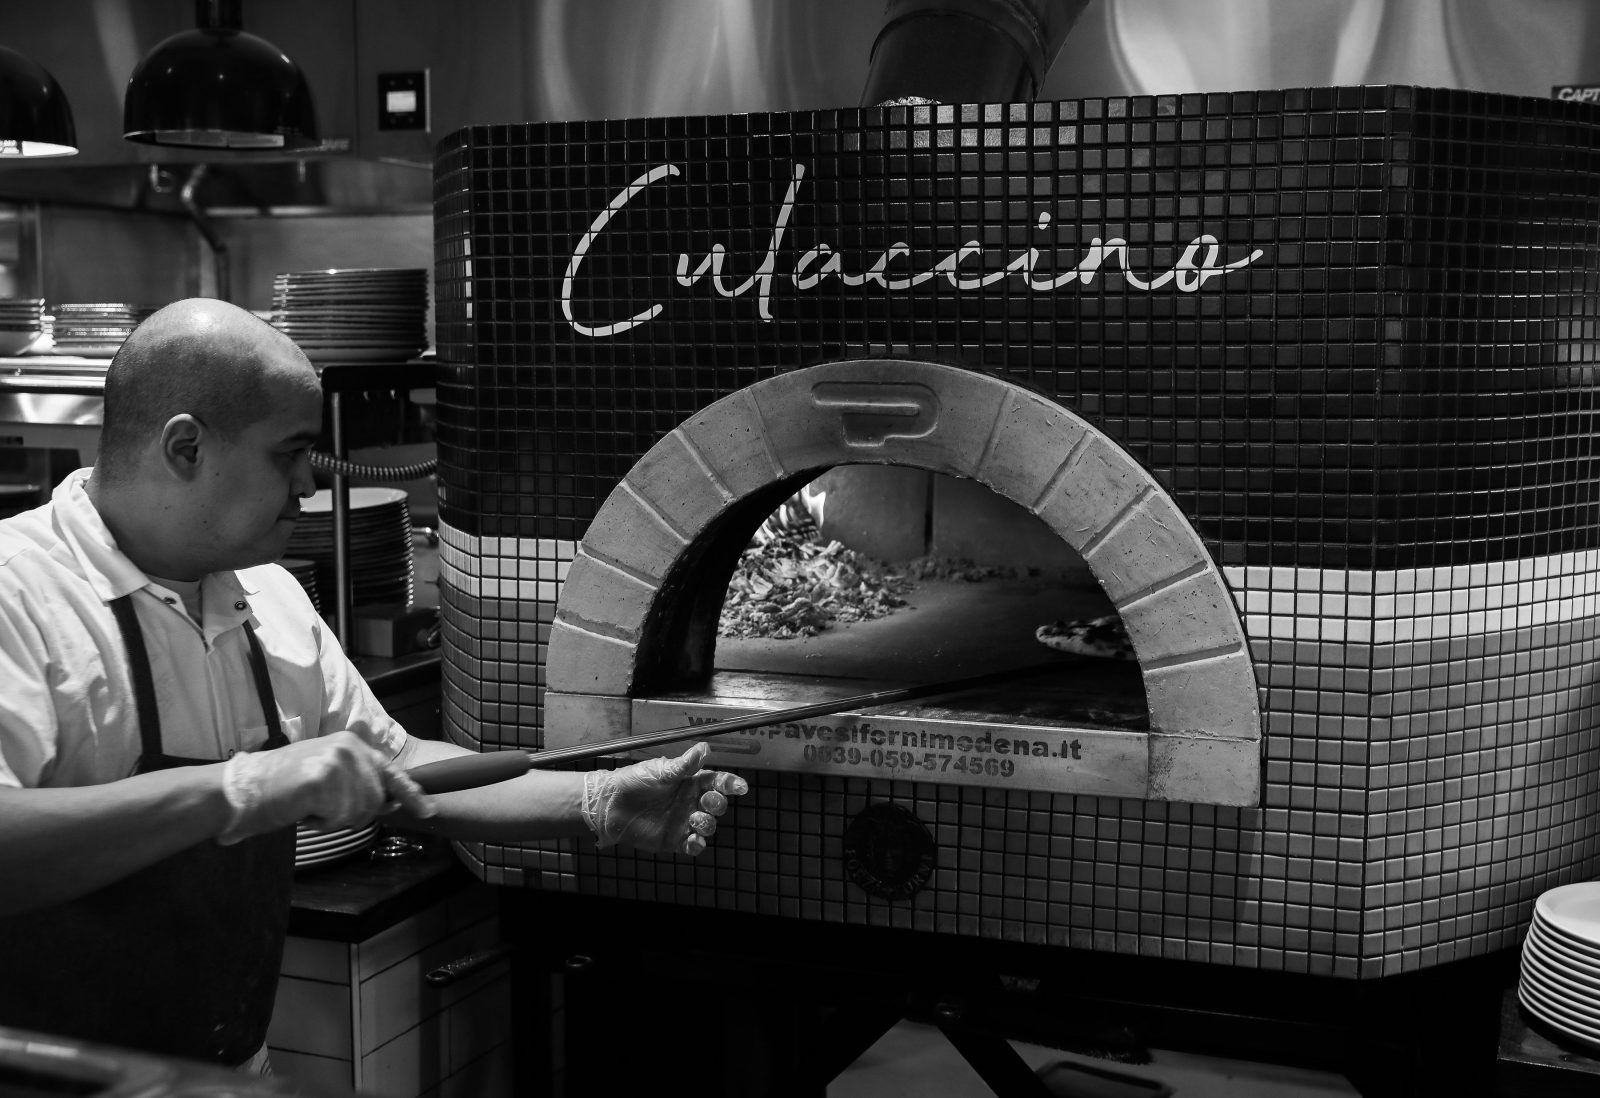 Culaccino's wood fired pizza oven